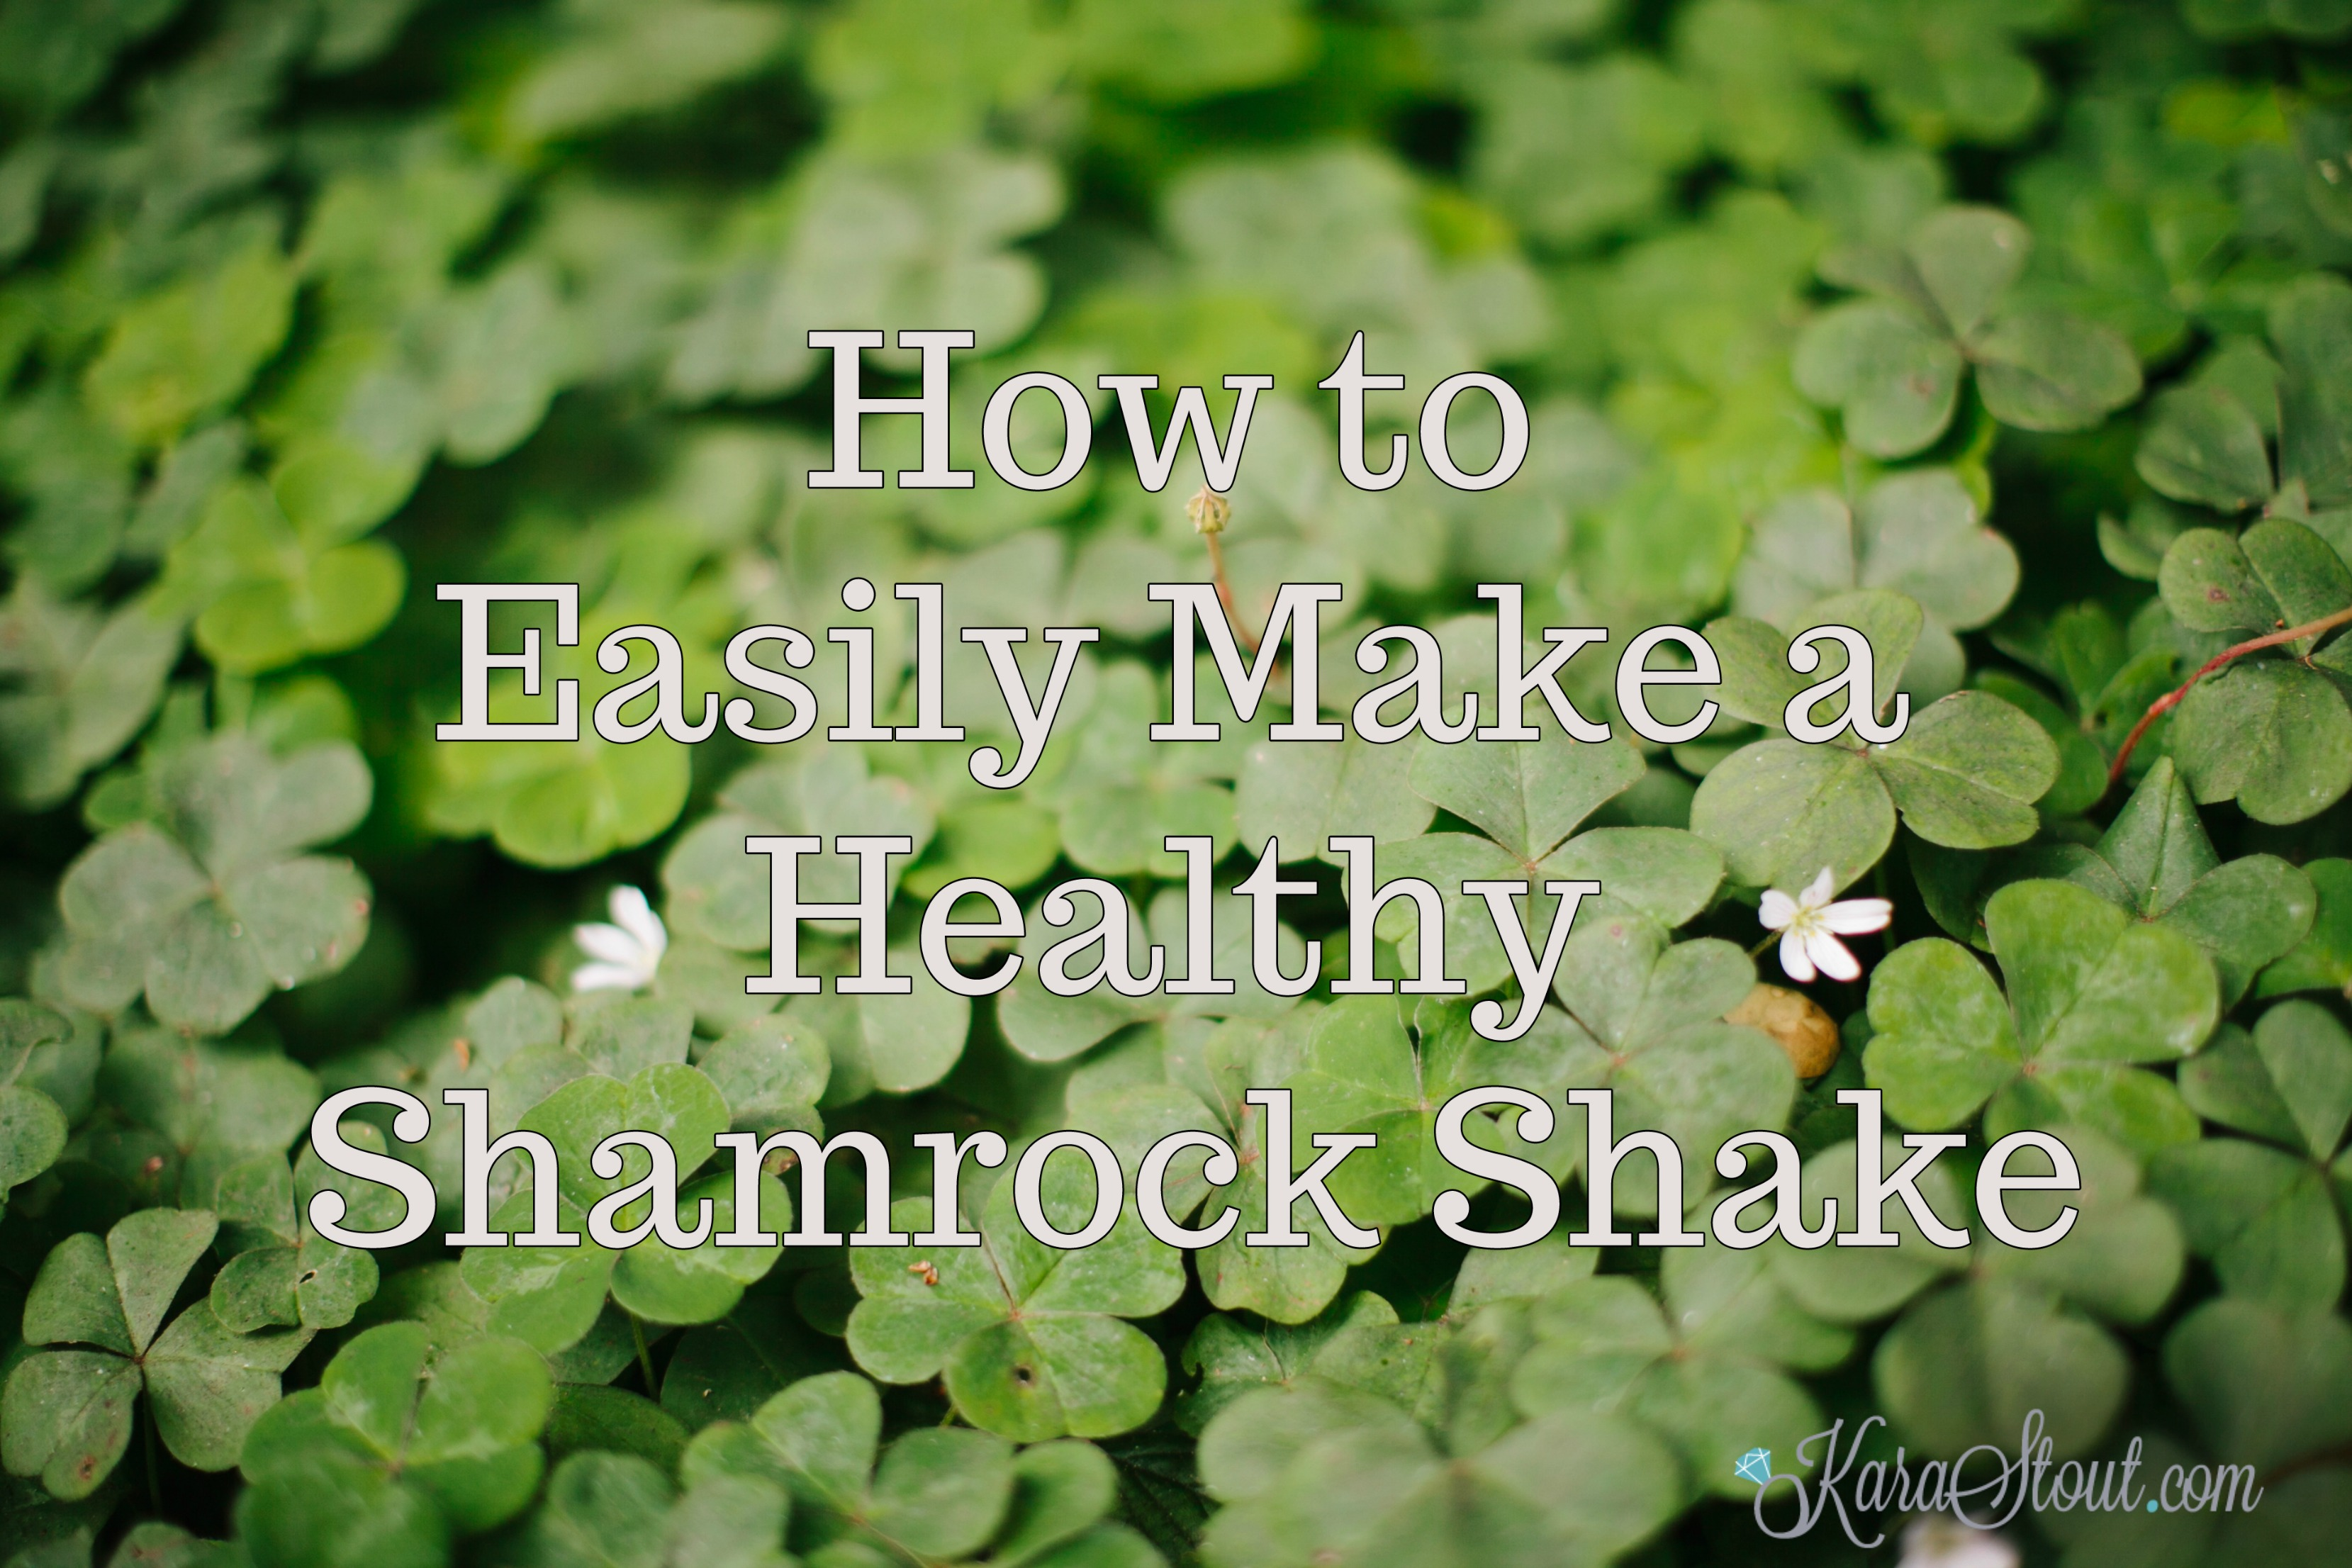 How to Easily Make a Healthy Shamrock Shake